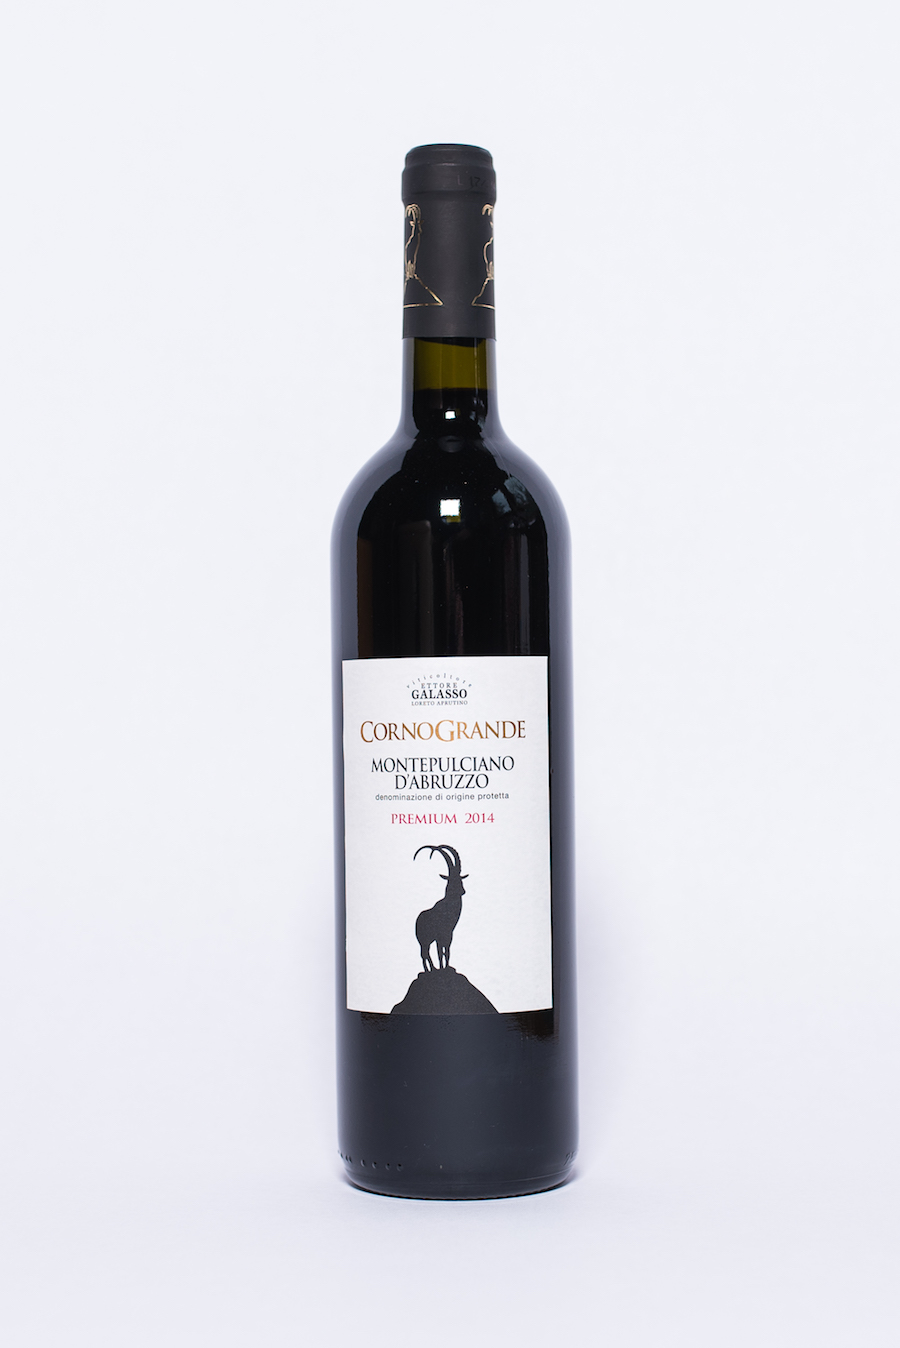 Corno Grande Montepulciano D'Abruzzo 2014    Producer:   Cantine Galasso    Region:  Abruzzo  Grapes:  Montepulciano  Nose:  Intense red fruit aroma with evidence of plum and sour black cherry  Taste:  Soft and refined, slightly tannic persistence